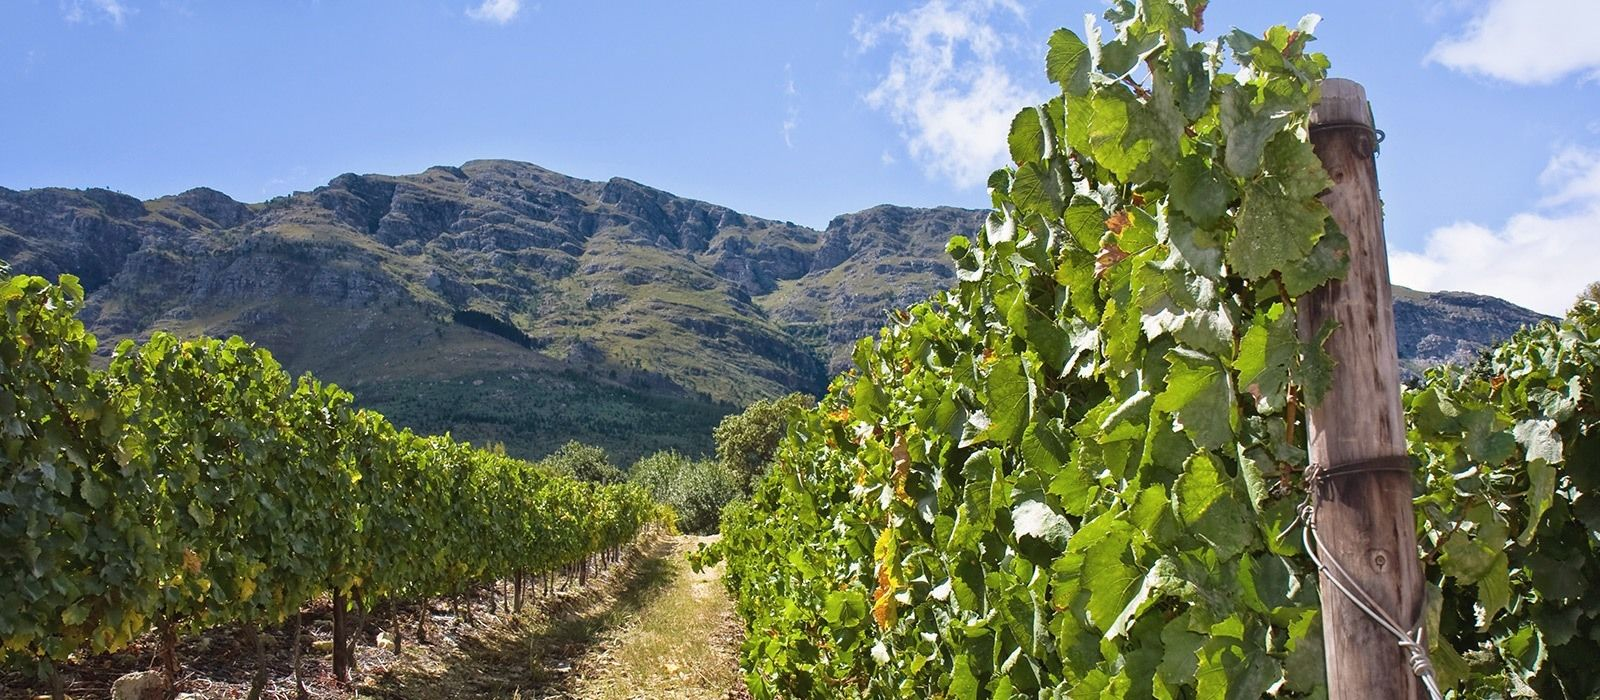 South Africa: Winelands, Garden Route and Eastern Cape Tour Trip 2